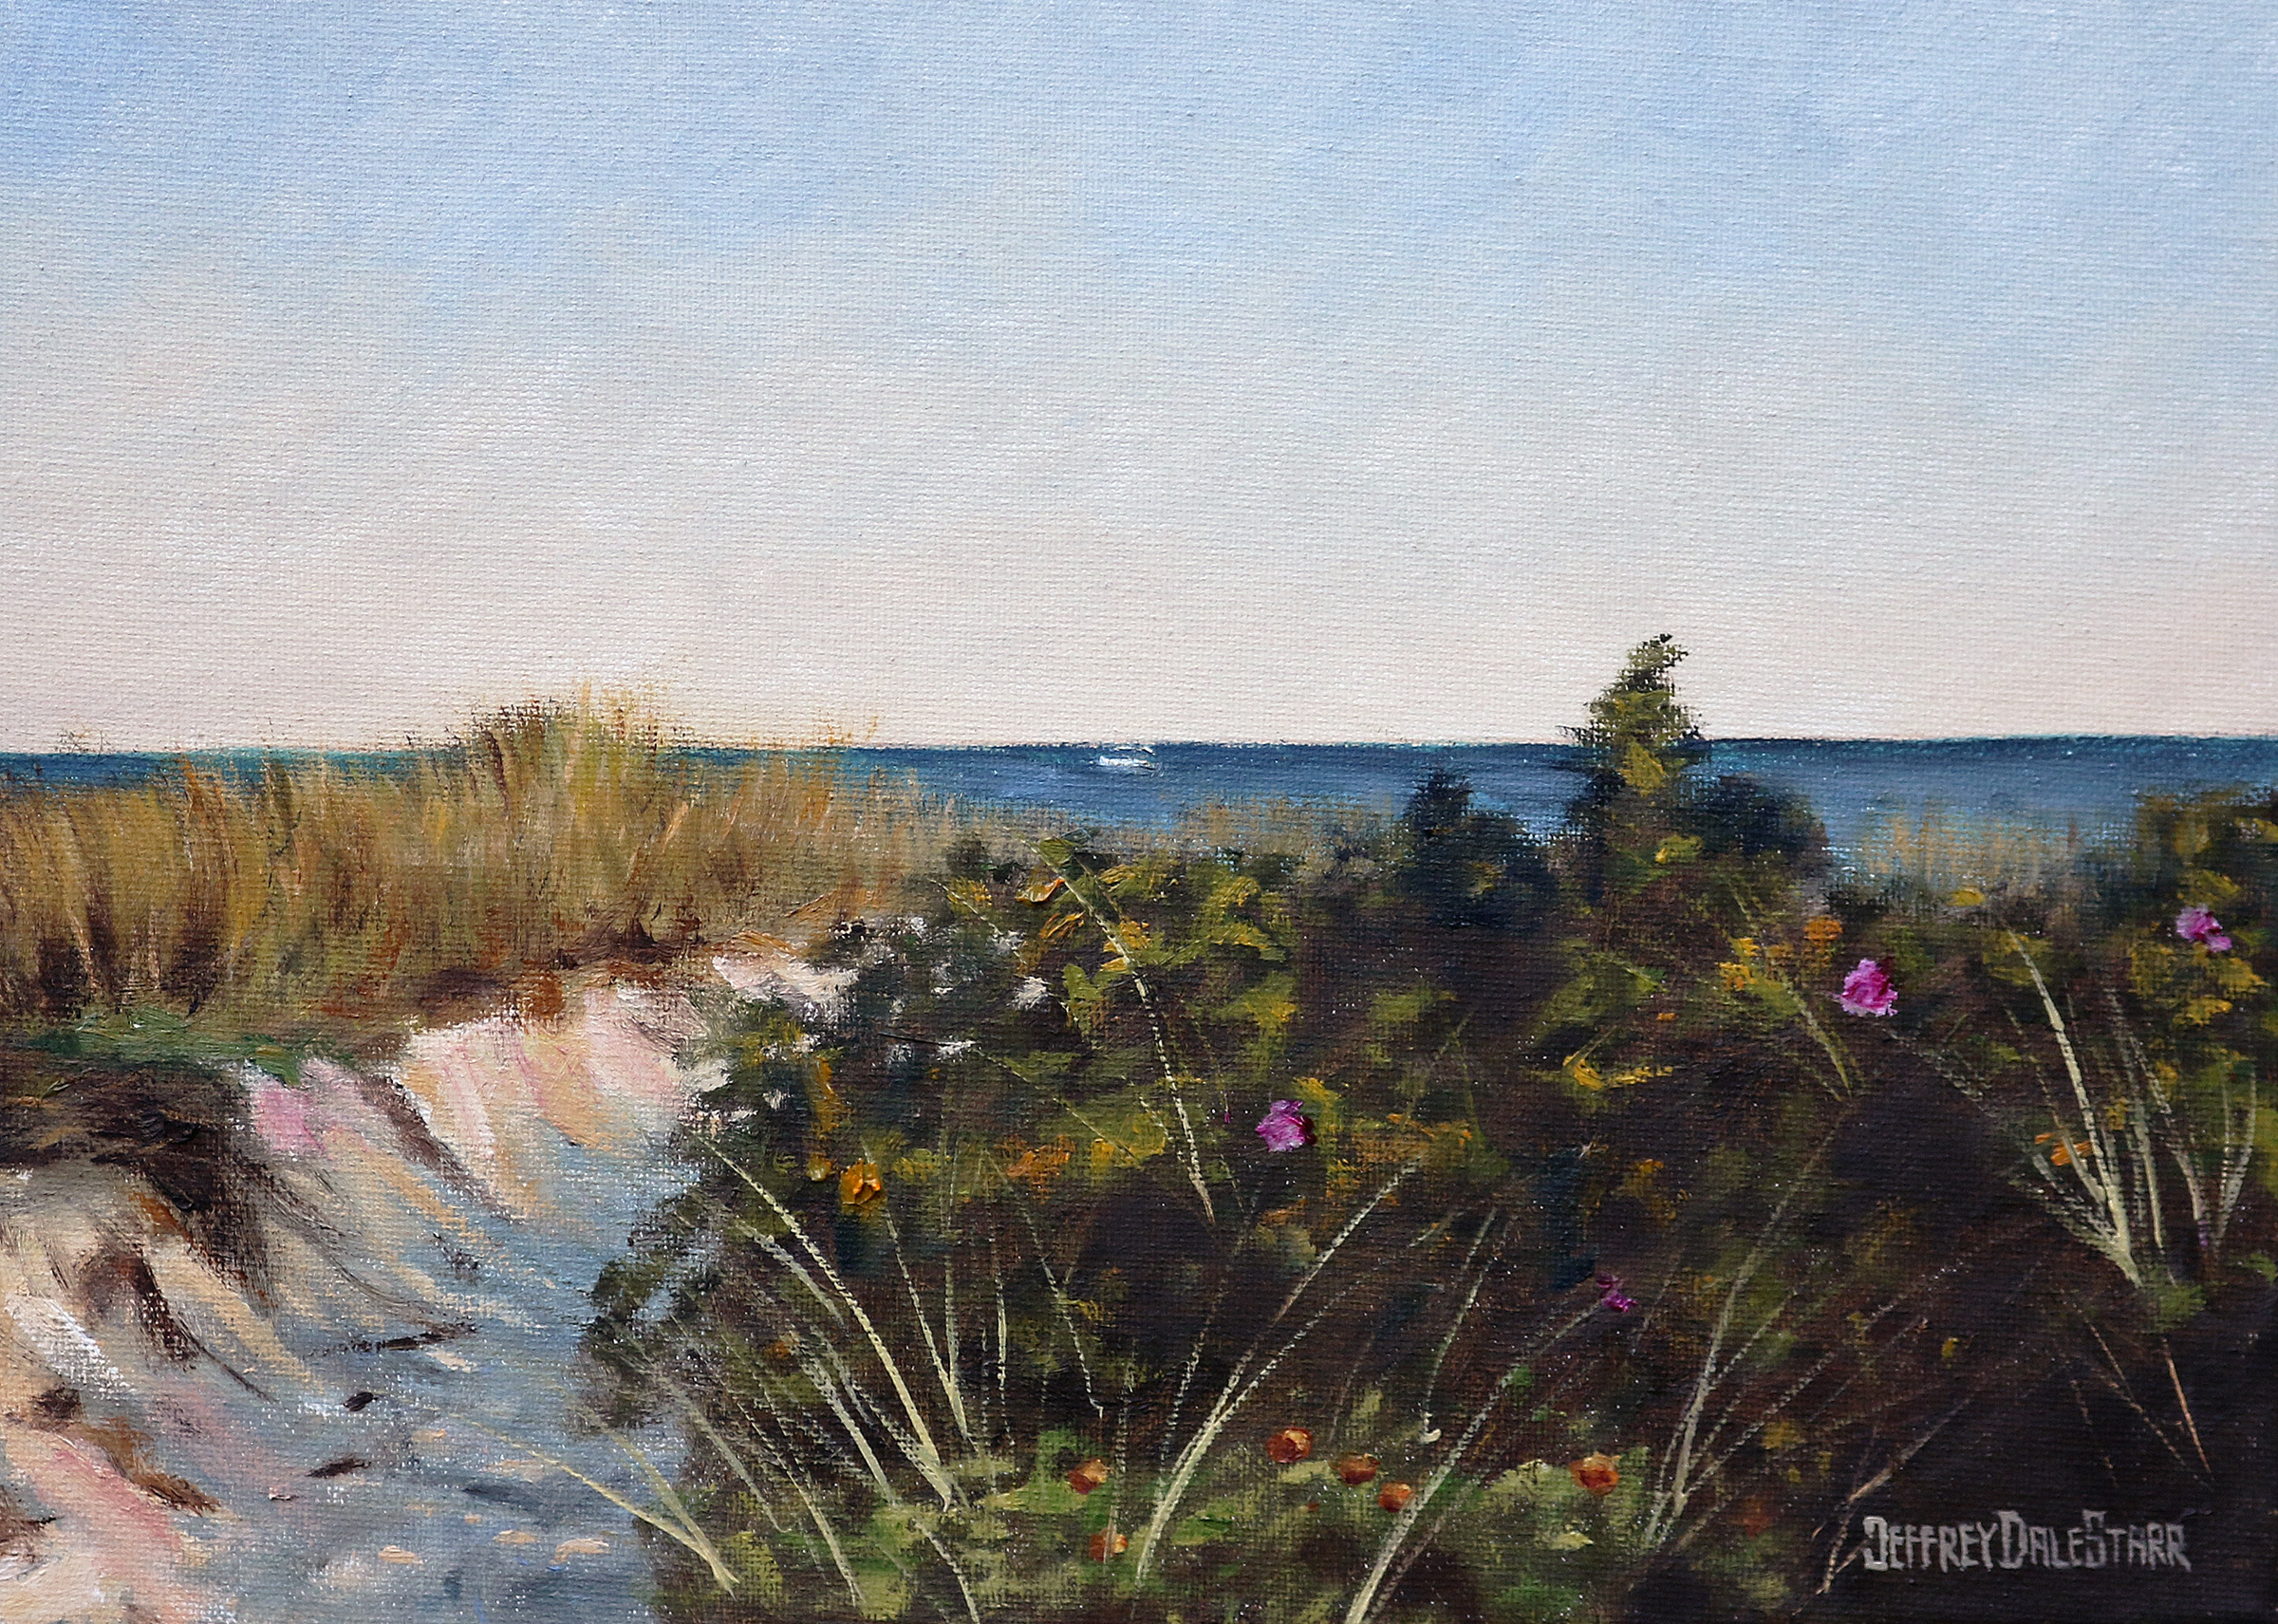 20181111 oil painting of entering dowses beach cape cod by american artist jeffrey dale starr